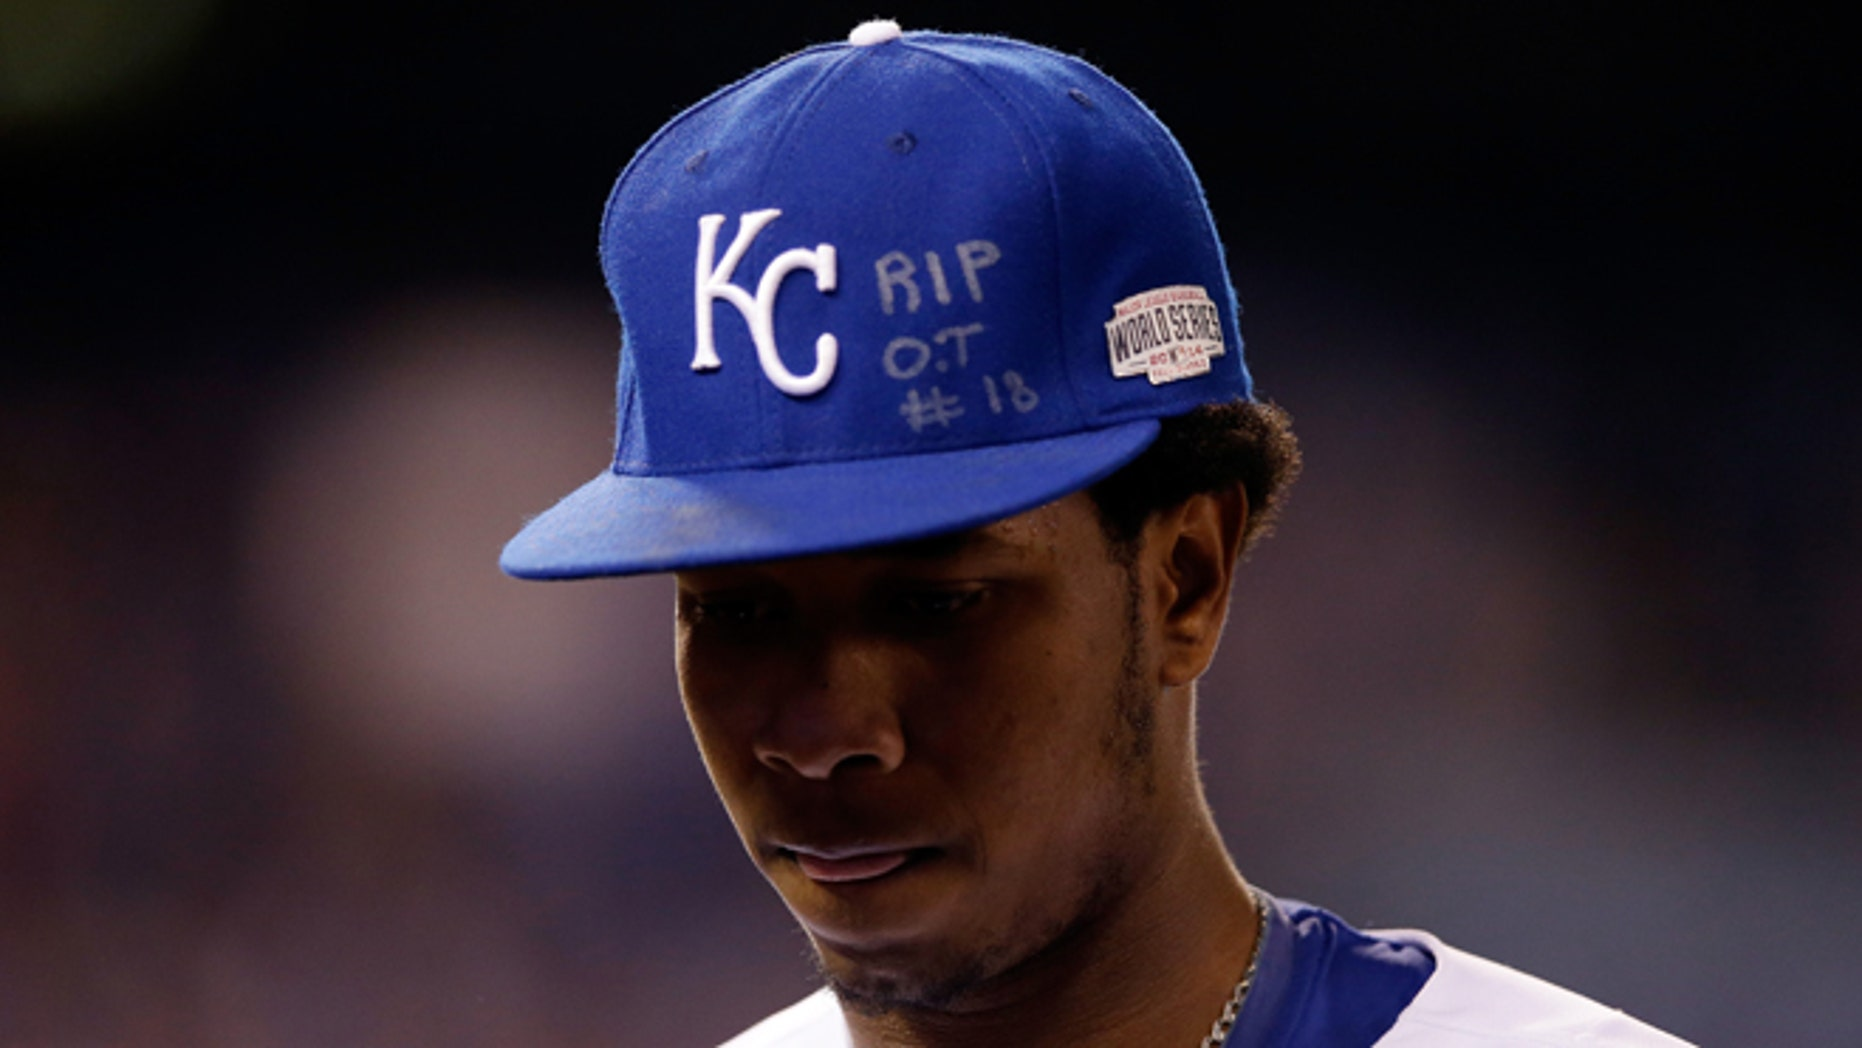 KANSAS CITY, MO - OCTOBER 28:  An inscription honoring the late Oscar Taveras is seen on the hat of Yordano Ventura #30 of the Kansas City Royals during Game Six of the 2014 World Series at Kauffman Stadium on October 28, 2014 in Kansas City, Missouri.  (Photo by Ezra Shaw/Getty Images)